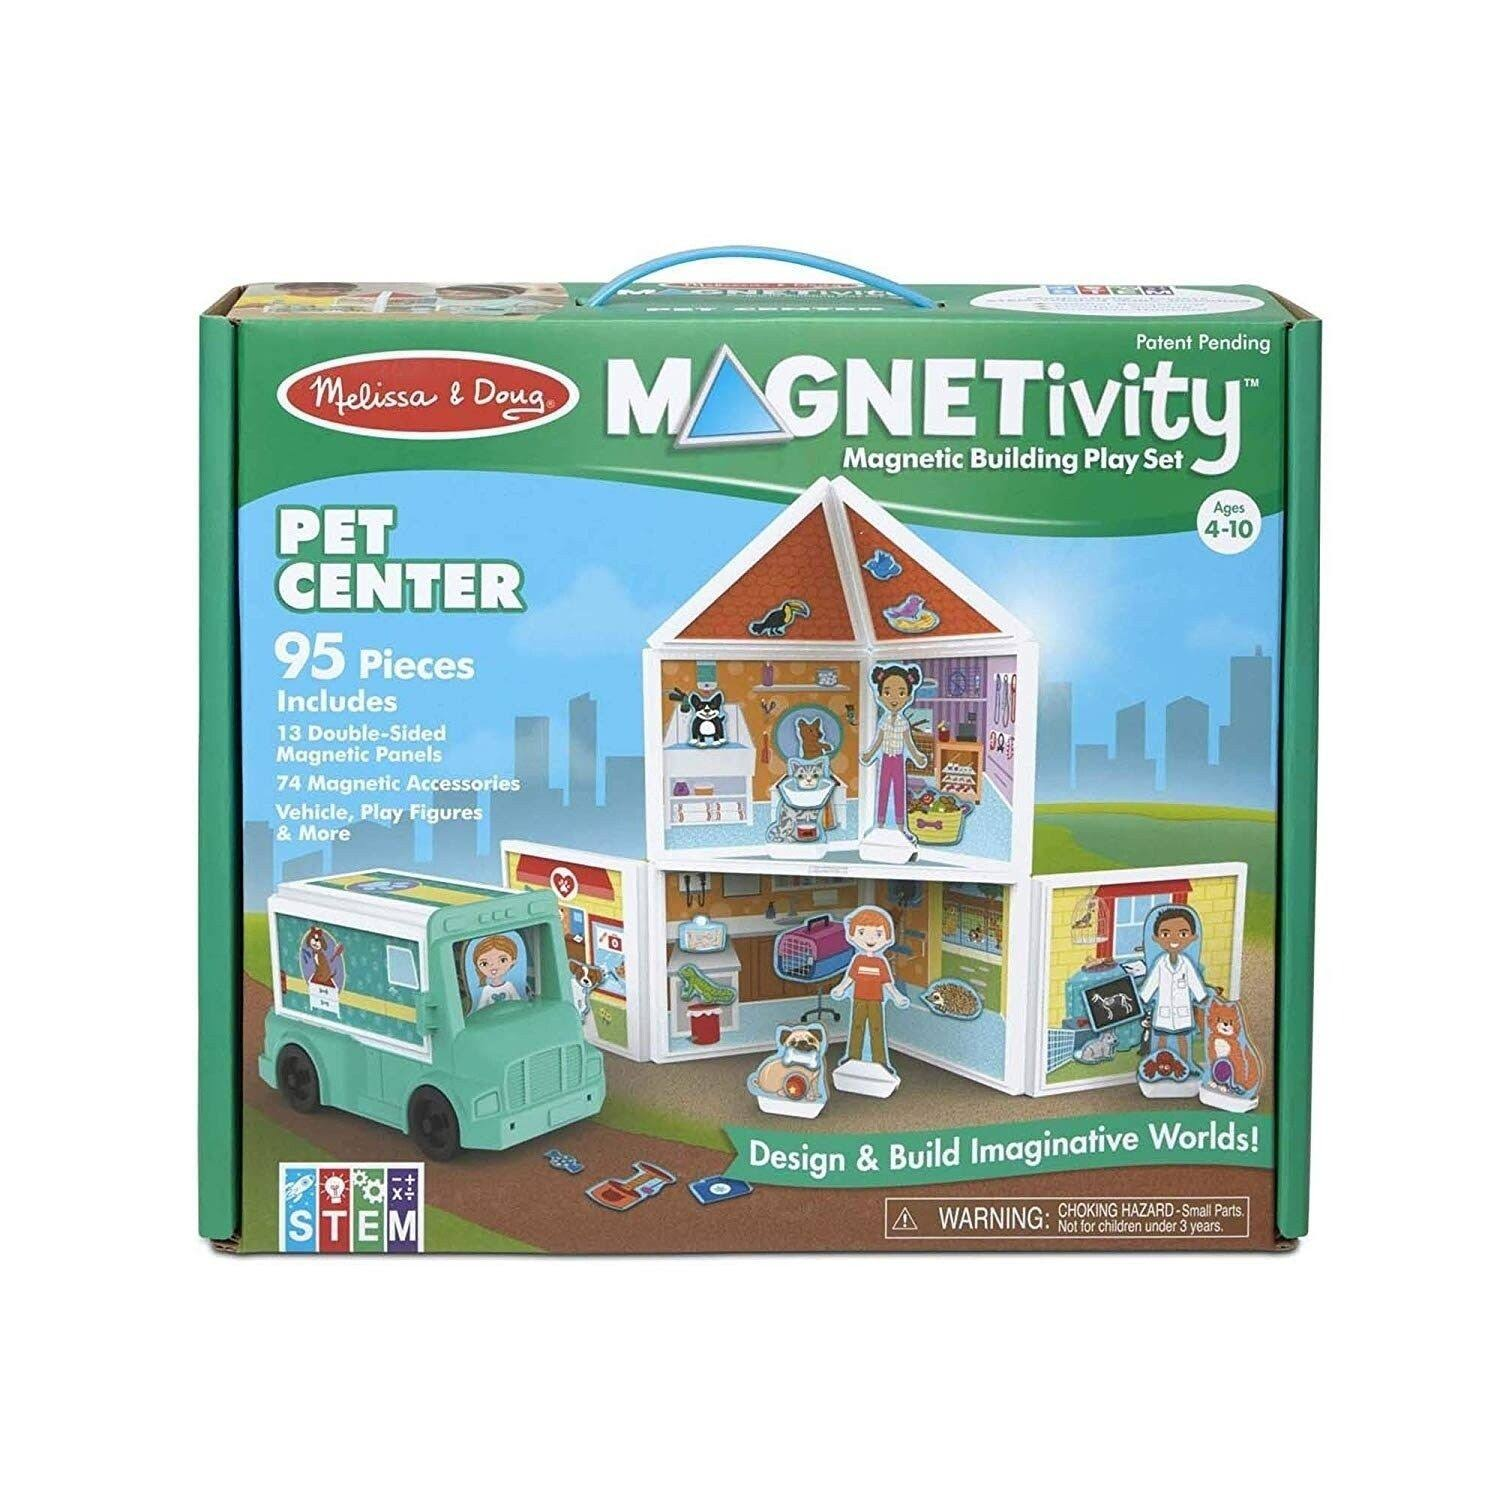 Melissa & Doug Building Play Set Pet Center Magnetivity Magnetic